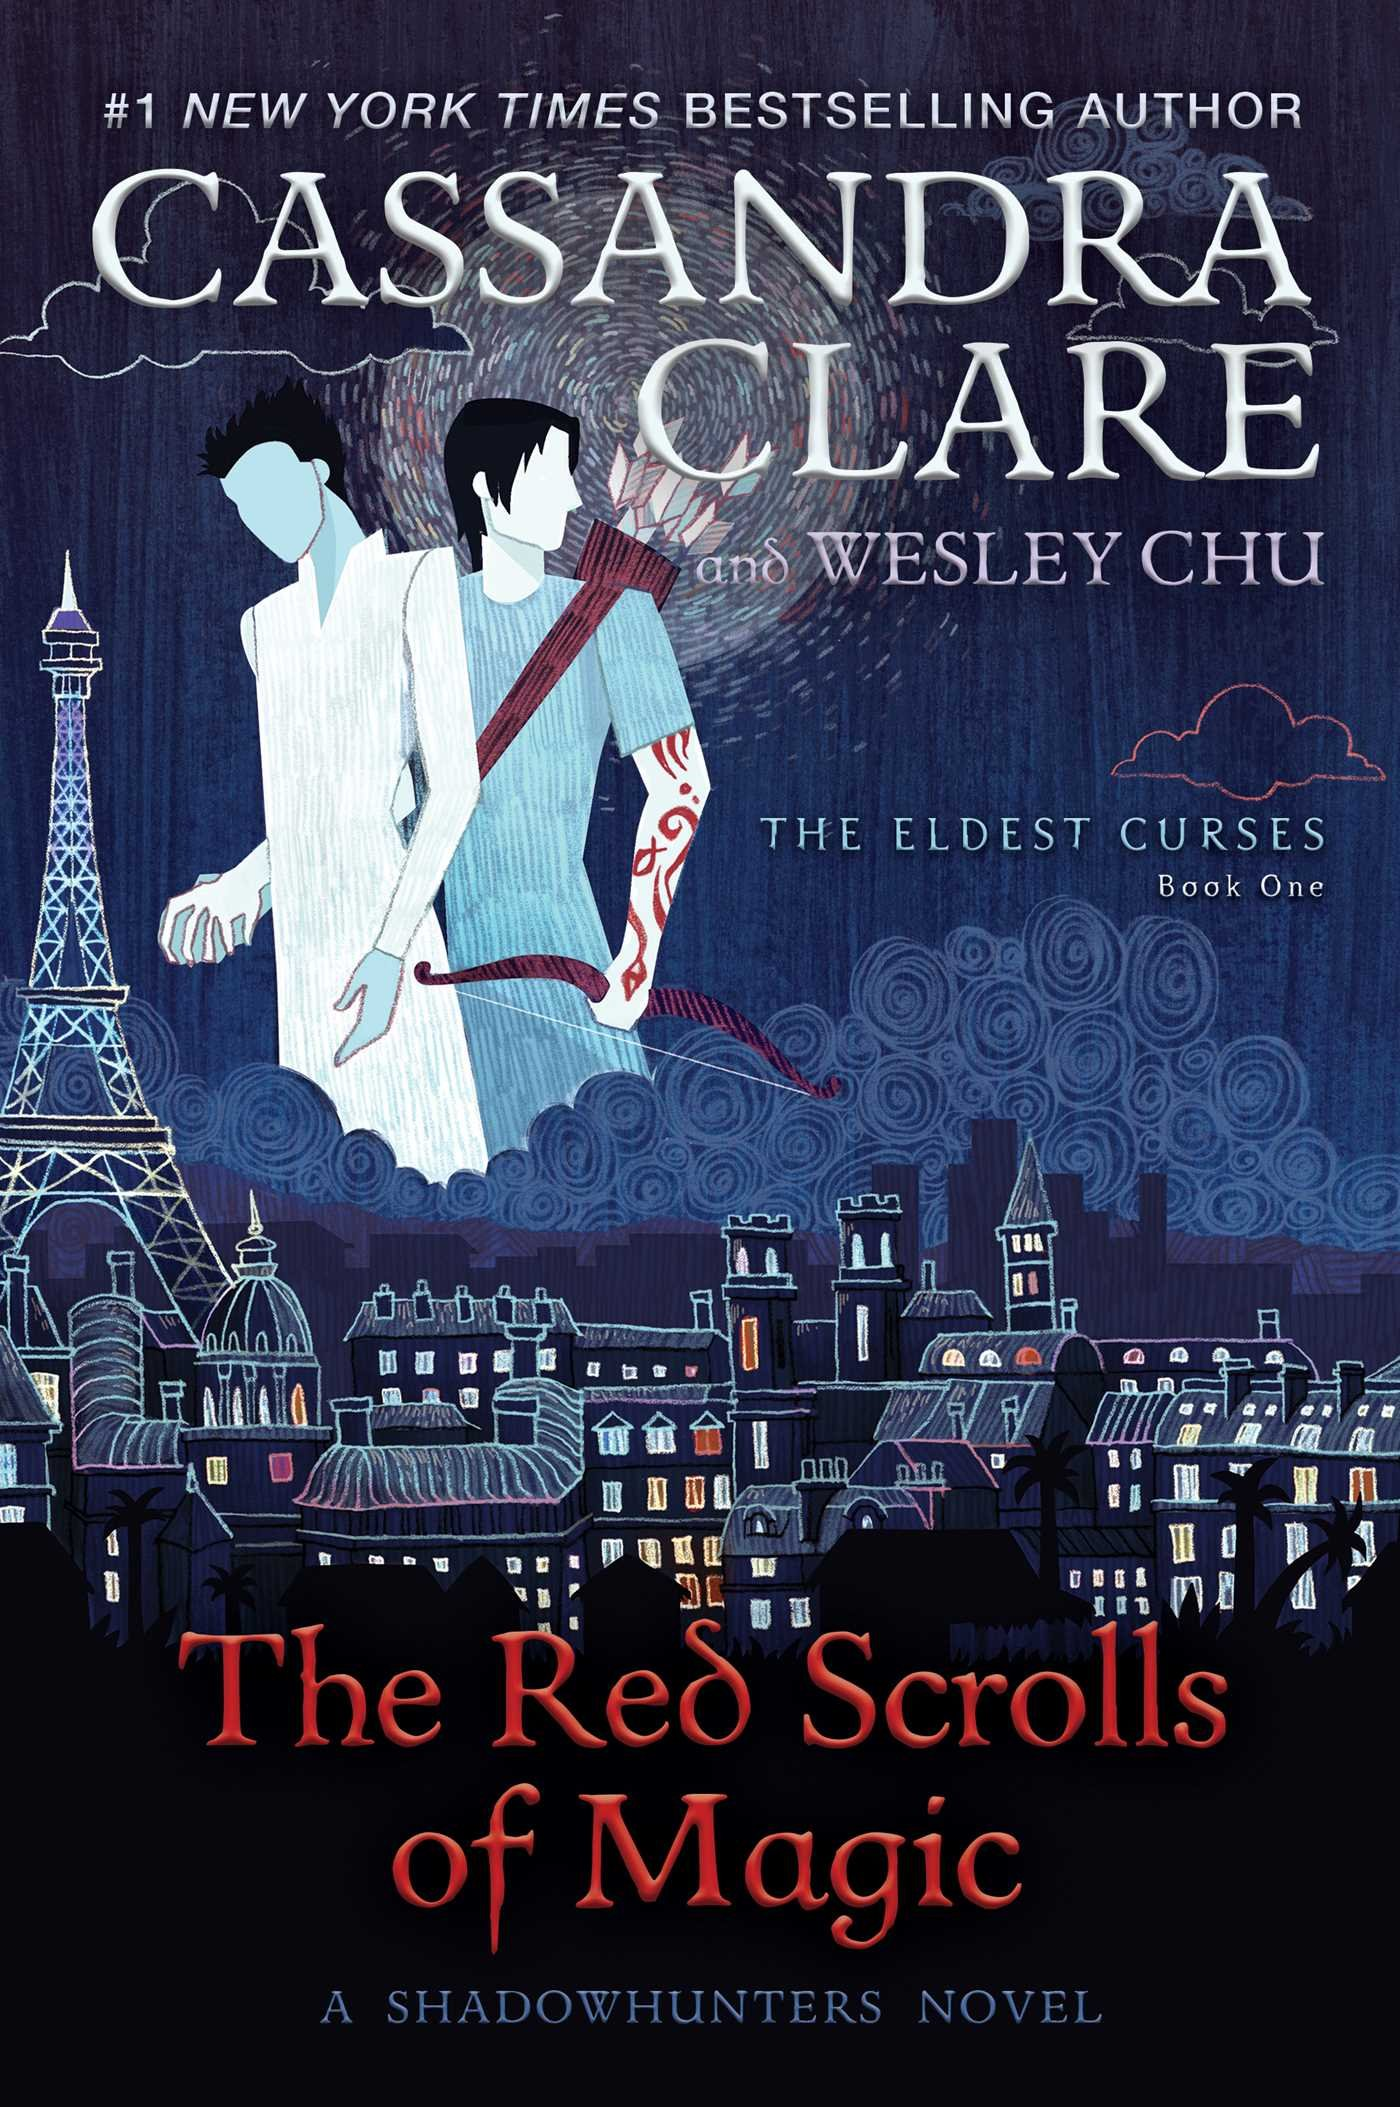 Image result for the red scrolls of magic cassandra clare